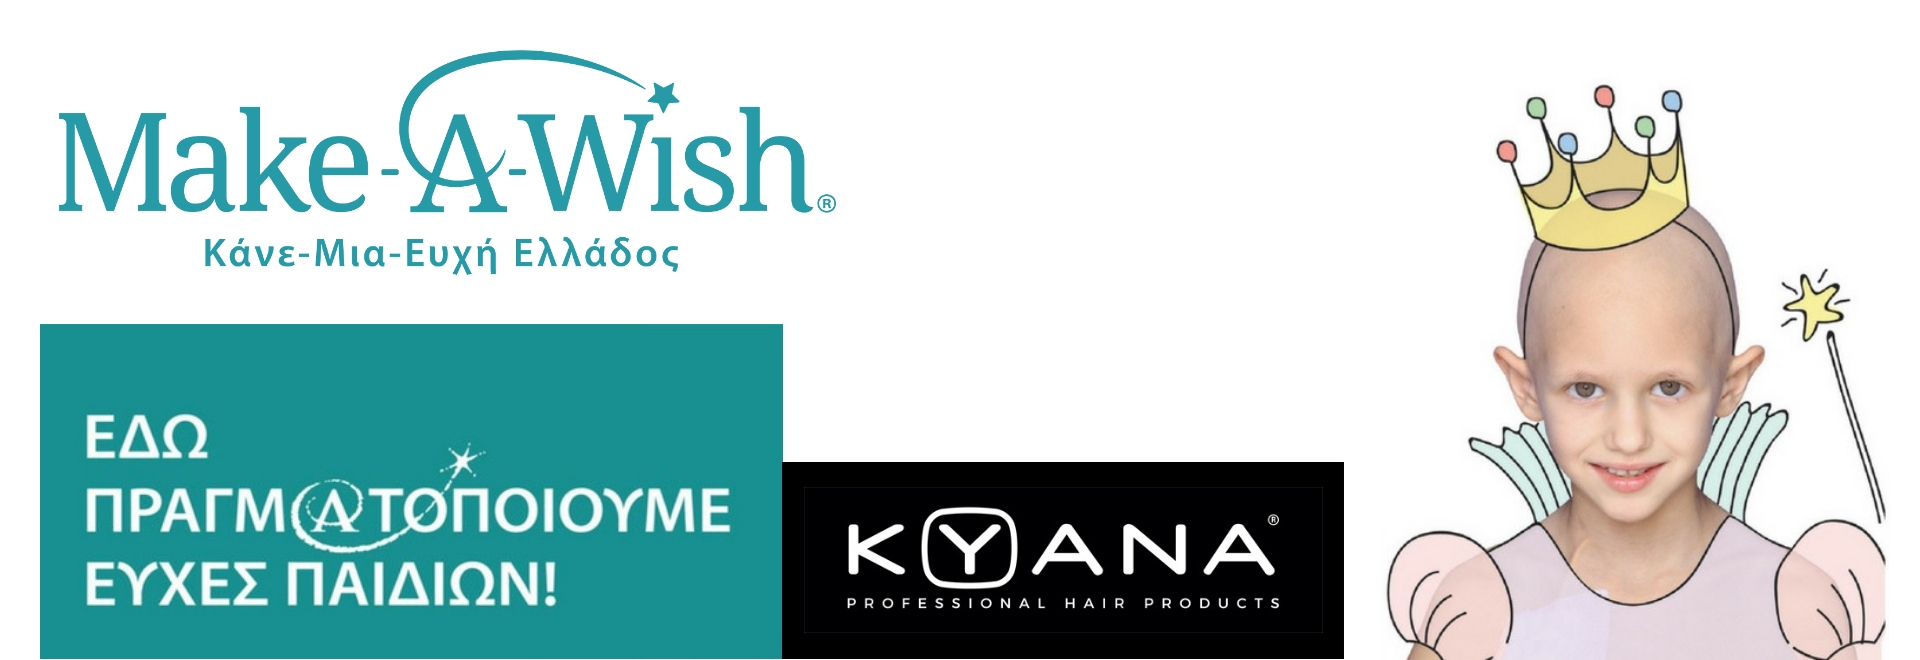 Kyana Make a Wish - Slider